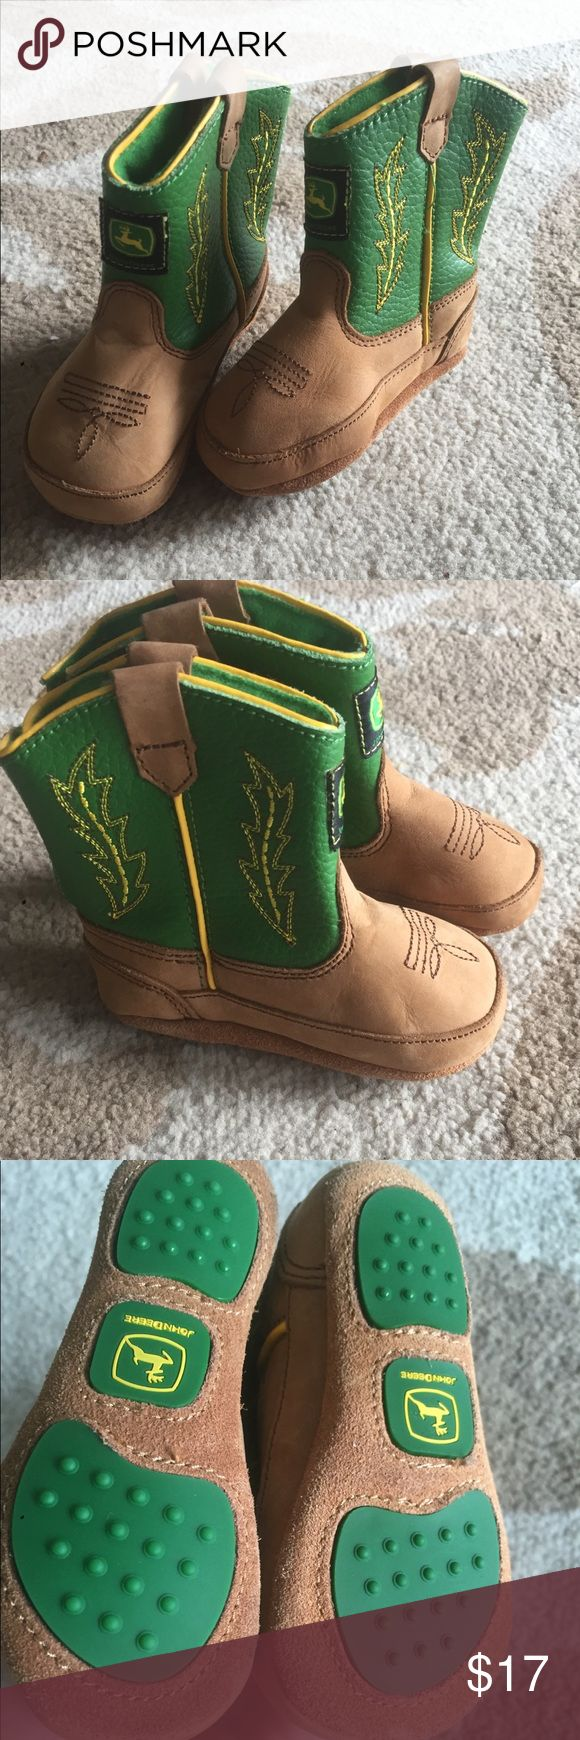 JOHN DEER BABY COWBOY BOOTS SIZE 4 months Adorable leather boots for your little man ! Light brown Leather  with john deer logo and green with yellow stitch design in side . *************** FOR LOCAL  PICK UP (Tampa ,Florida and surrounding areas ), contact PRICING **************** LIGHTLY USED  ||NO STAINS, FADING ,TEARS|| ---------------------- || WE CONSIDER ALL OFFERS|| ||10% BUNDLE DISCOUNT || ||10-20% PRIVATE BUNDLE DISCOUNTS OFFERED ON 2 OR MORE ITEMS || John Deere Shoes Boots